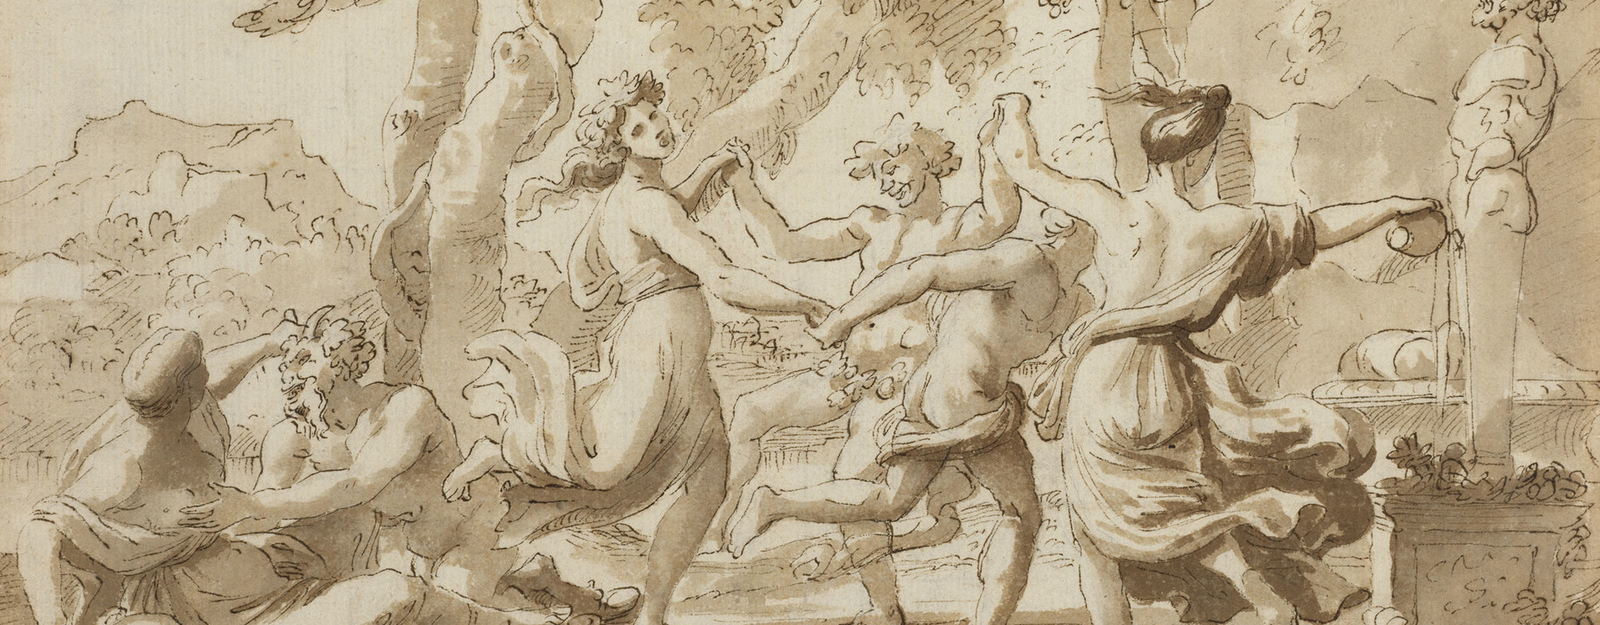 Recto: a drawing of a round dance before a herm of Pan (or Priapus), with a nymph and satyr to the left. Verso: a very weak sketch of a Holy Family group. The verso has not been catalogued.